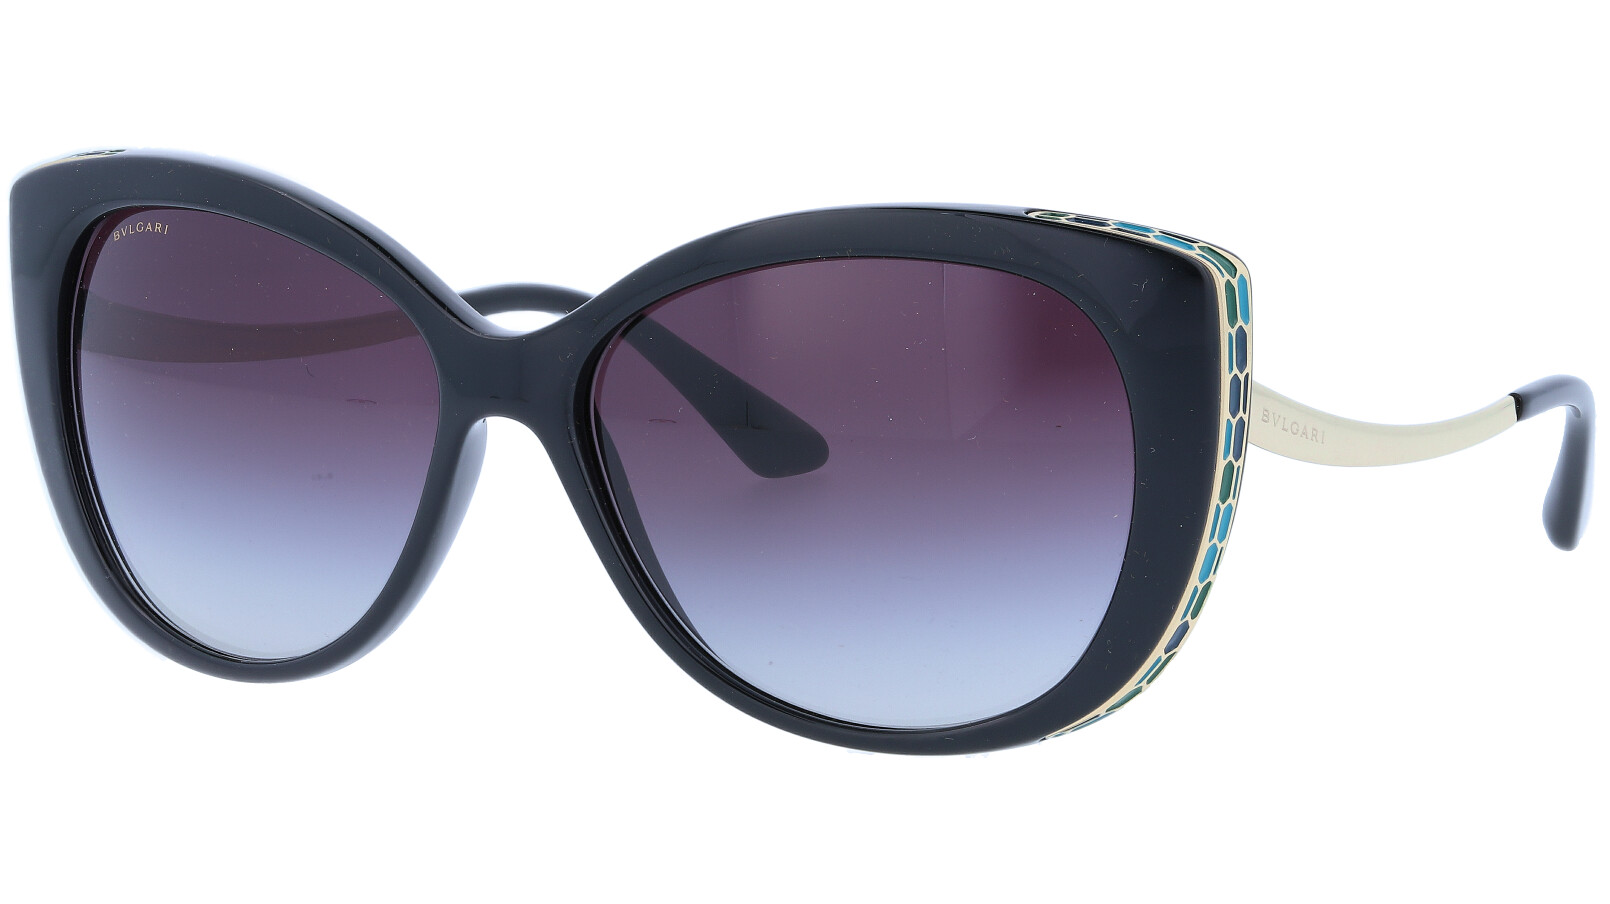 BVLGARI BV8178 9018G 57 BLACK Sunglasses